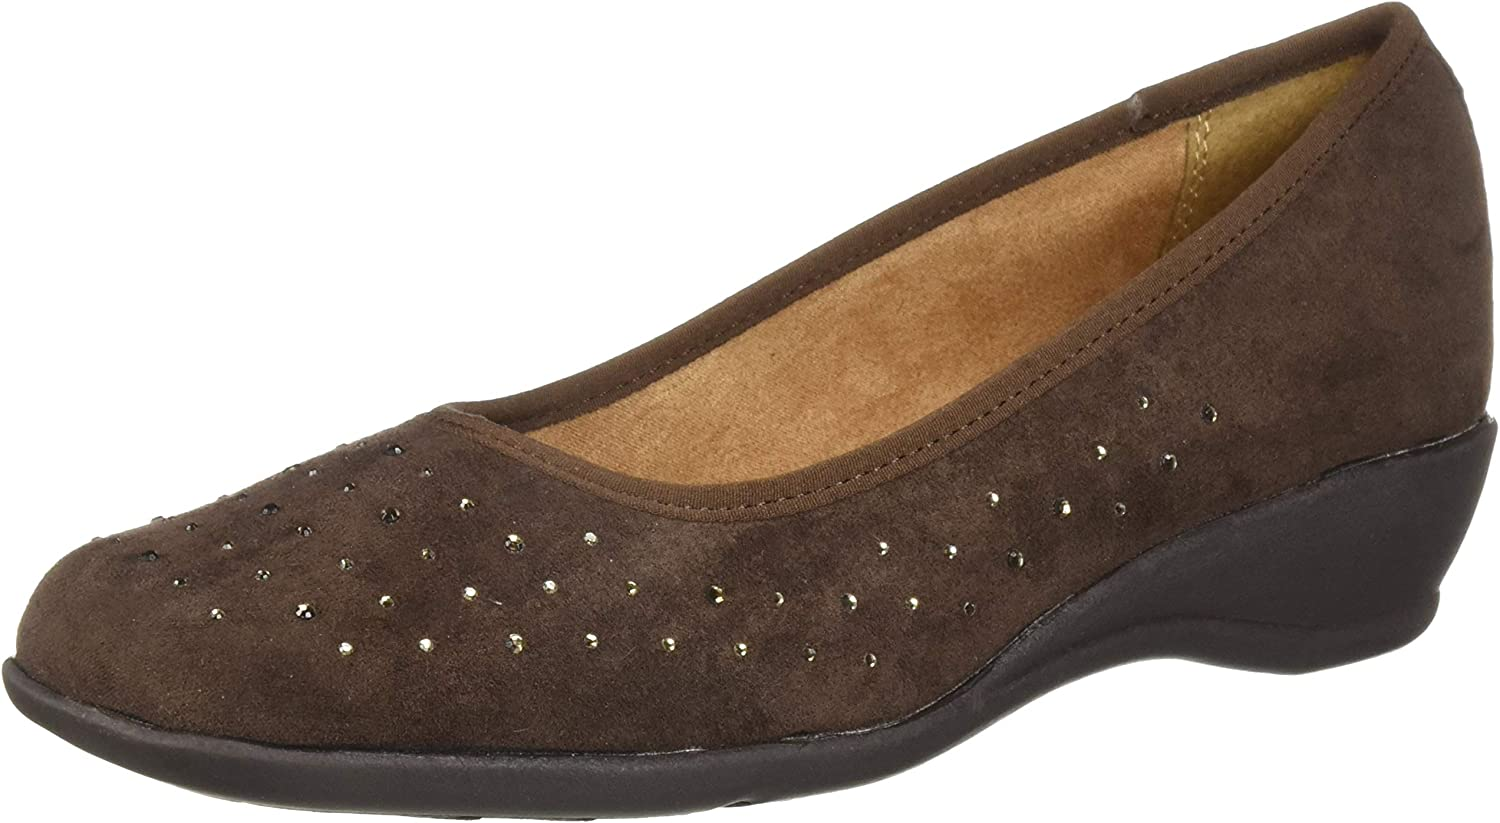 Hush Puppies Soft Style by Wouomo Rubi Pump Dark Marronee Faux Suede 8 Extra Wide US